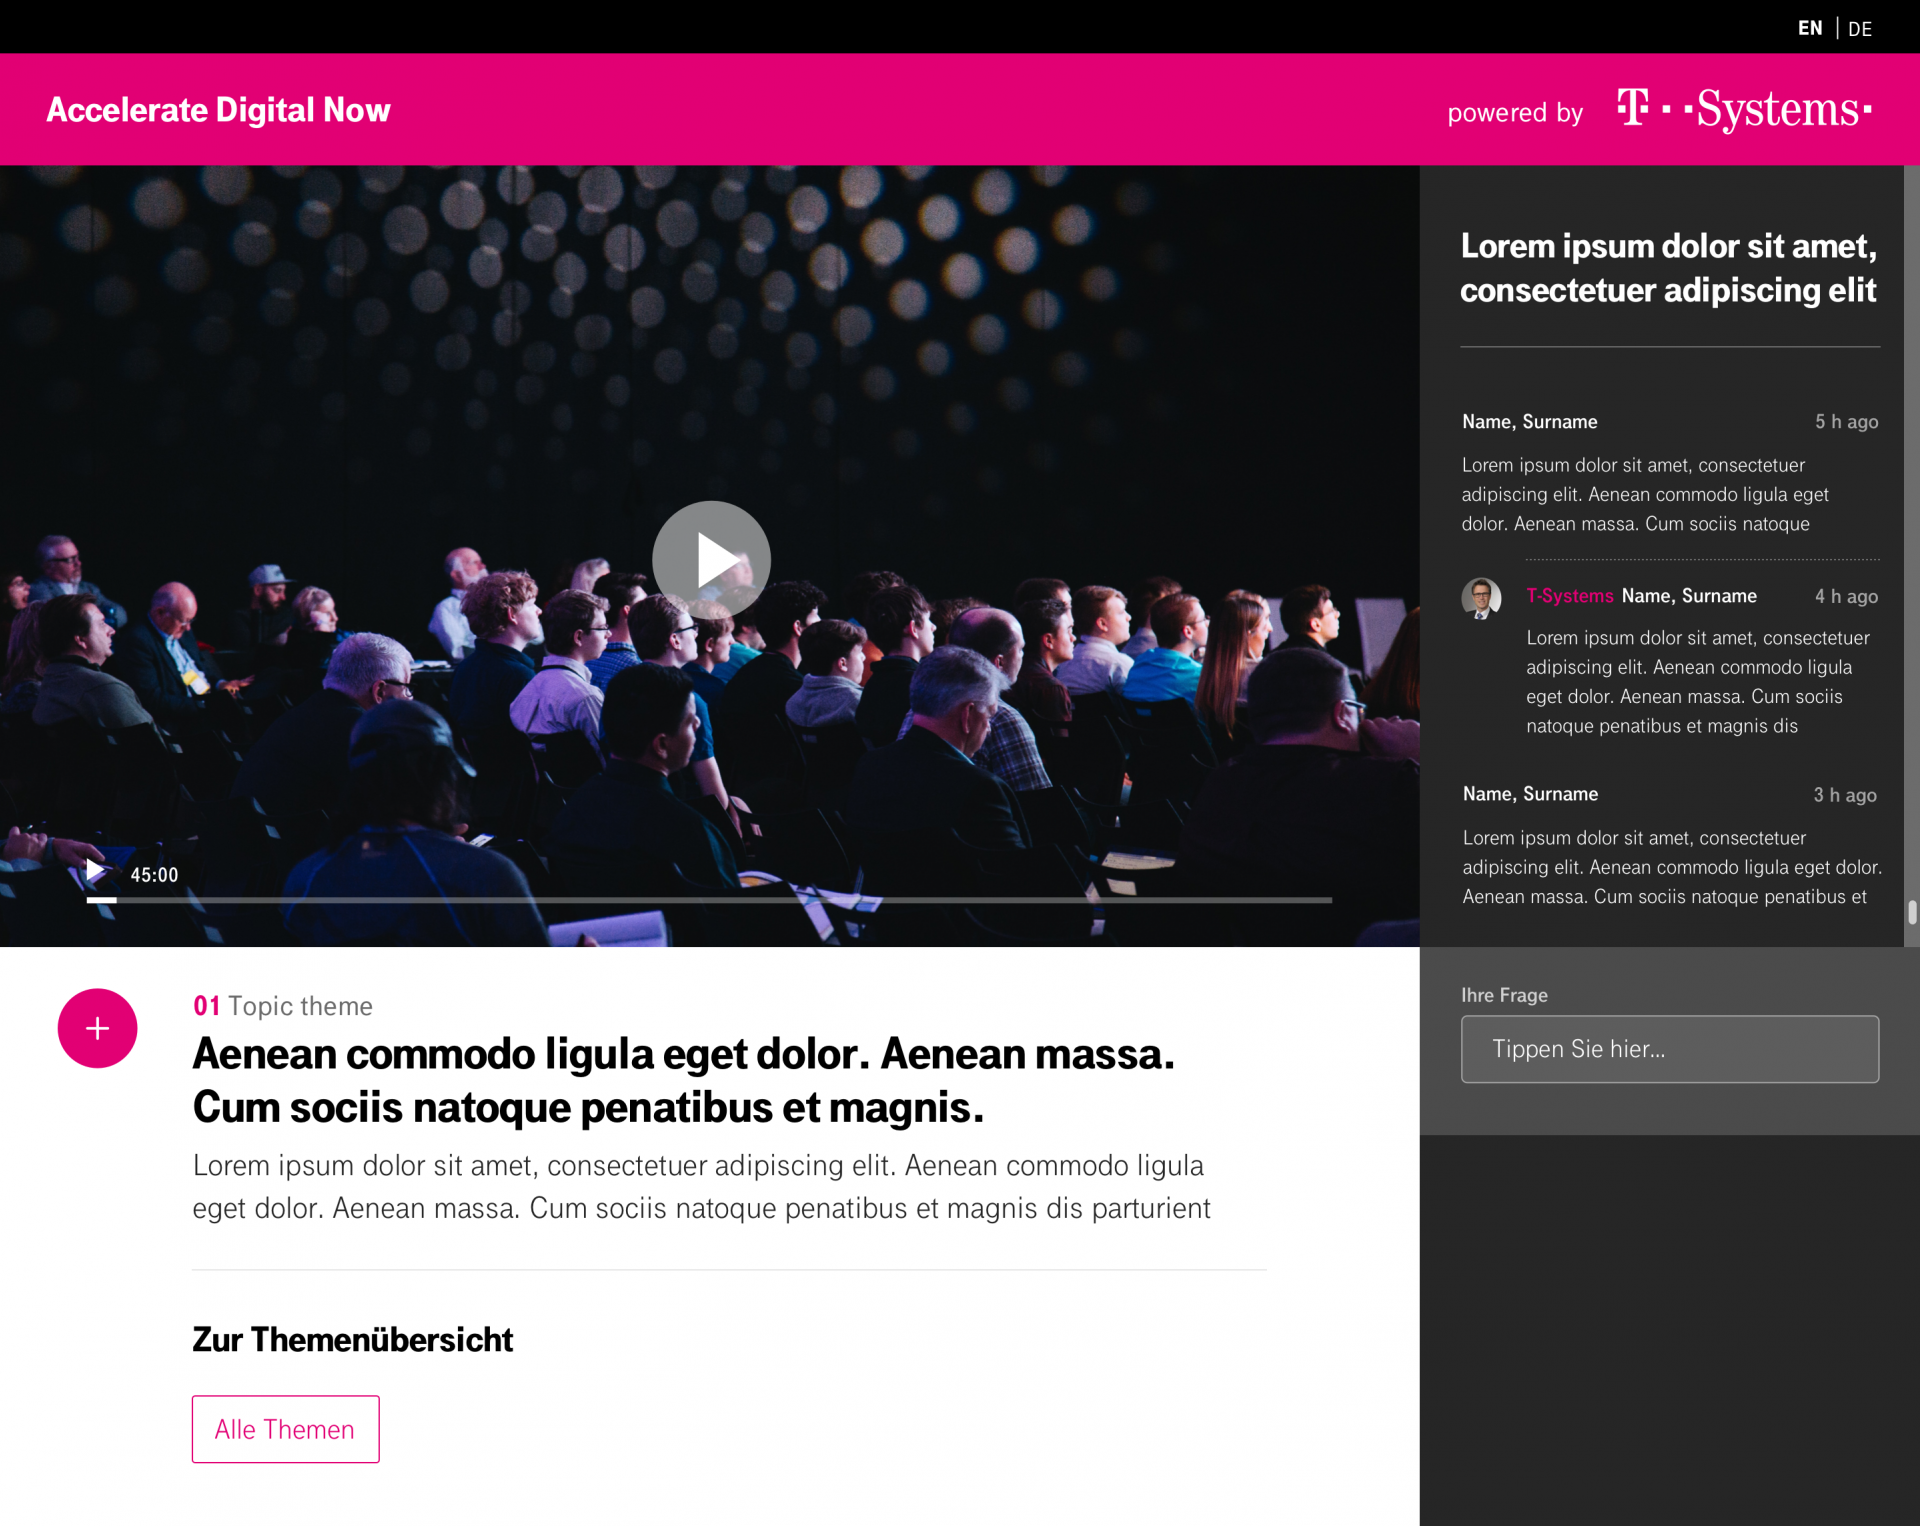 T-Systems Accelerate Now digitales event interface design